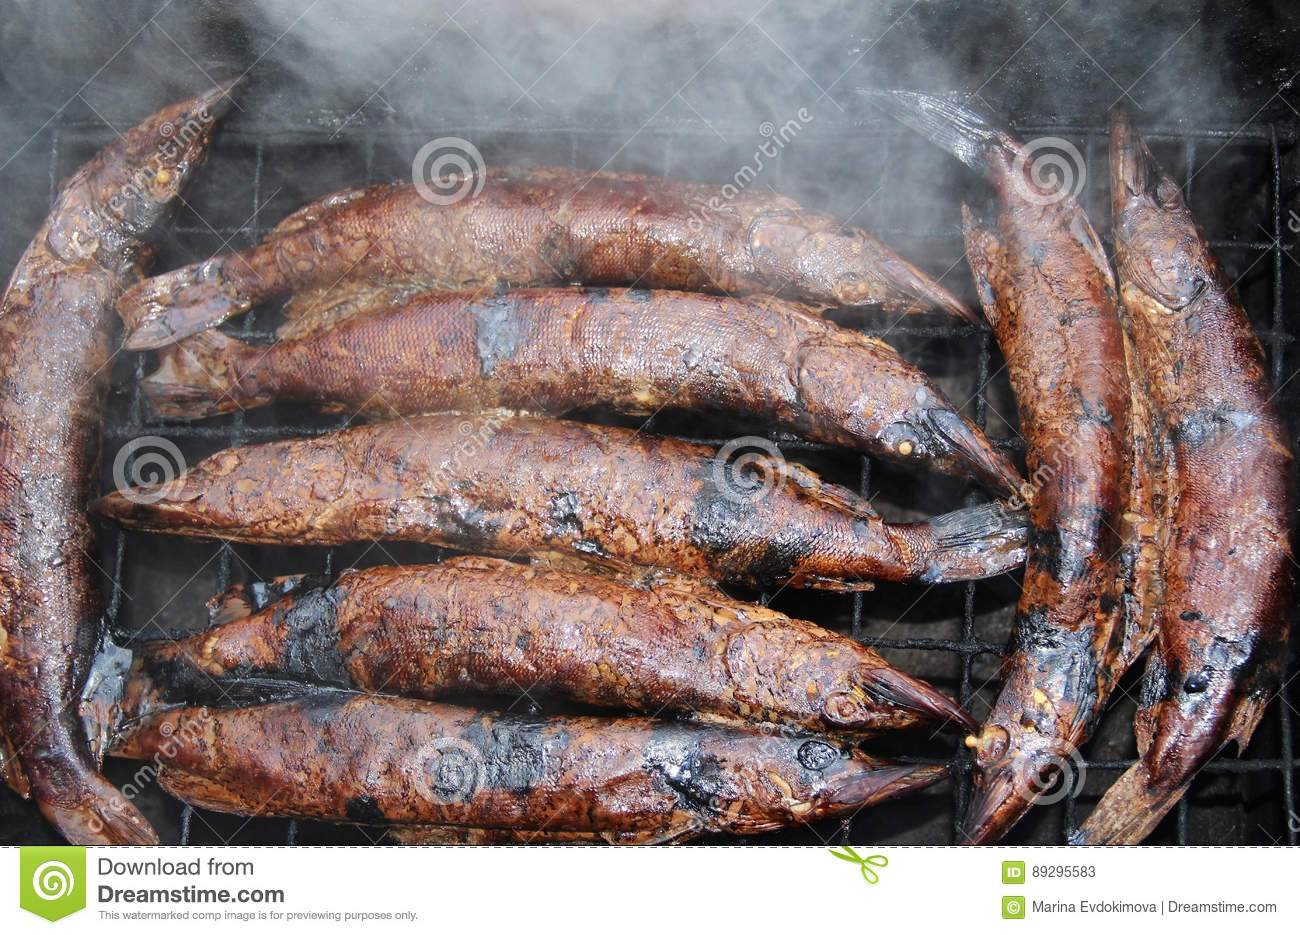 How to smoke fish in smokehouse What can smoke fish 75